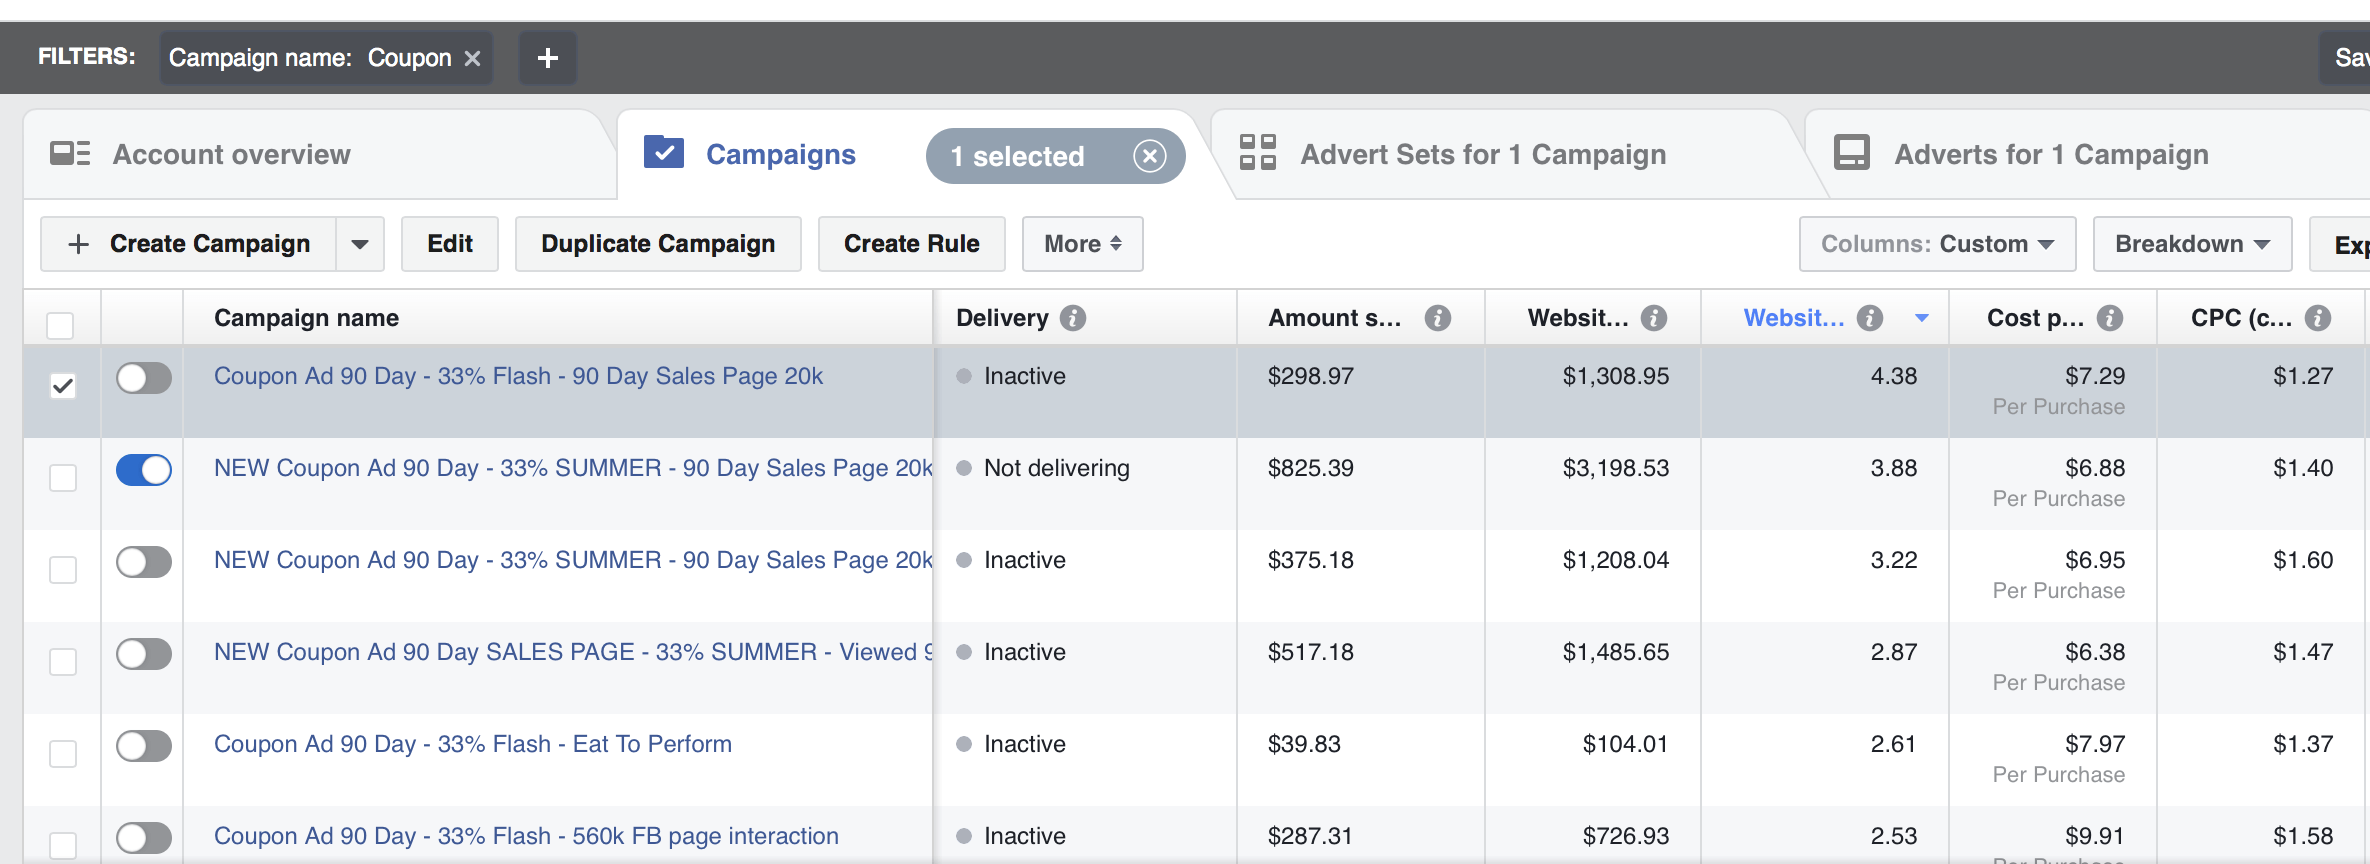 facebook ad offer results